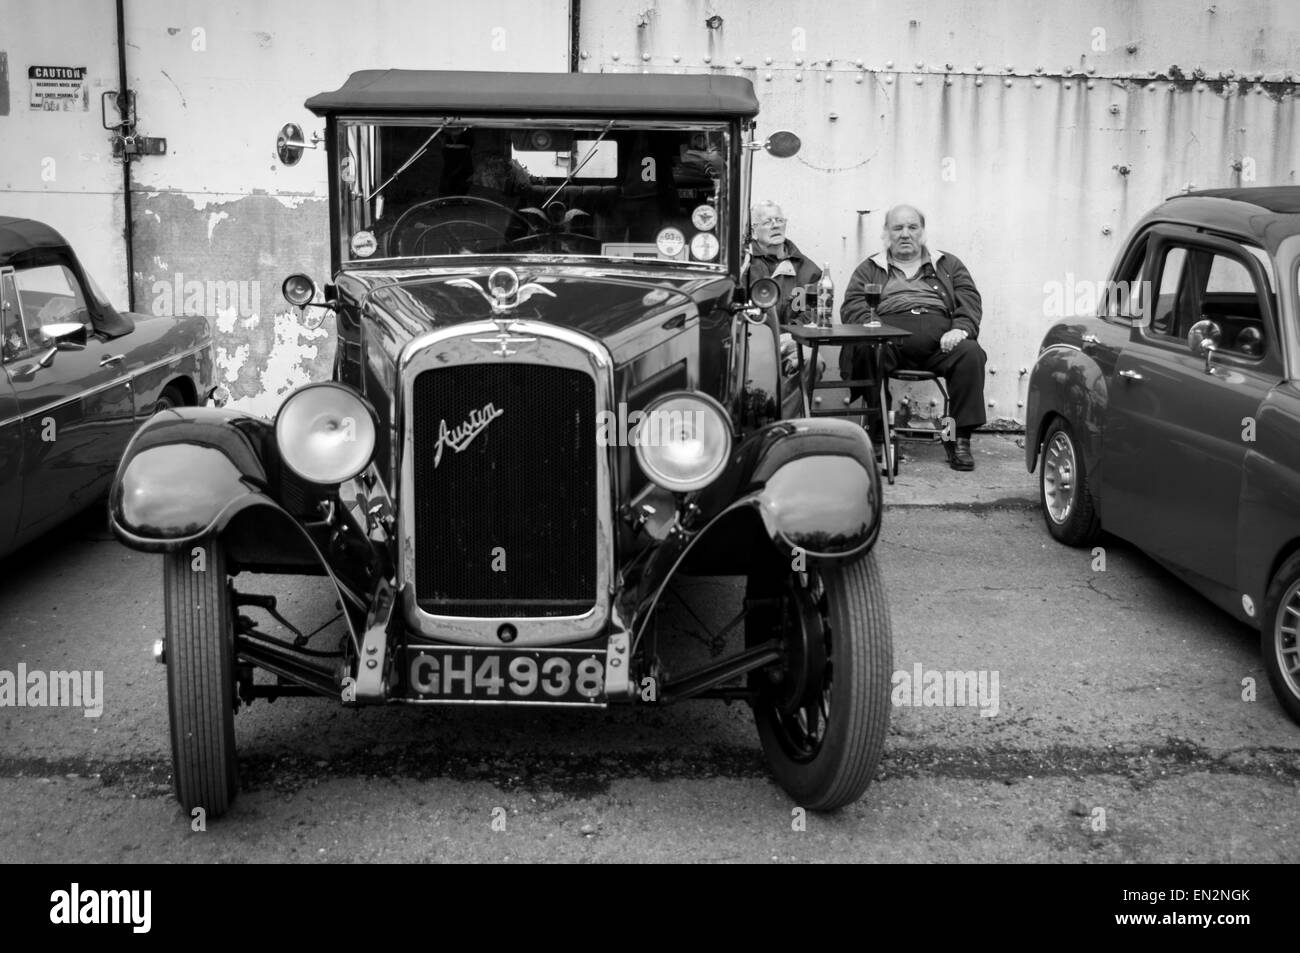 Vintage Austin at the 5th Sunday Brunch Scramble in Bicester Heritage, Oxfordshire, England - Stock Image